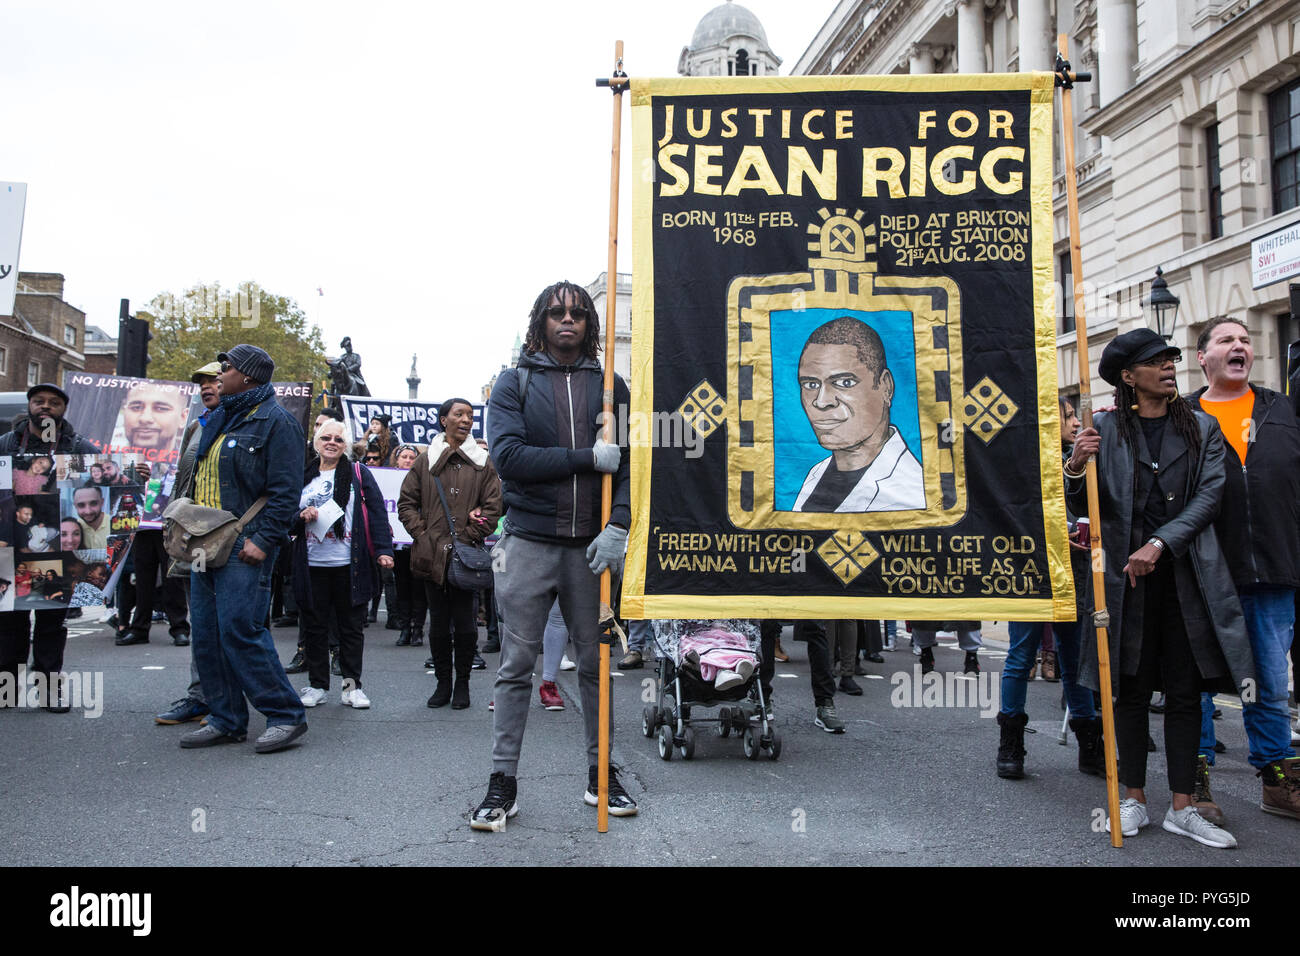 London, UK. 27th October, 2018. Marcia Rigg, sister of Sean Rigg,Campaigners from the United Families and Friends Campaign (UFFC) take part in the 20th annual procession to Downing Street in remembrance of family members and friends who died in police custody, prison, immigration detention or secure psychiatric hospitals. Sean Rigg, 40, died on 21st August 2008 while in police custody at Brixton police station. Credit: Mark Kerrison/Alamy Live News - Stock Image